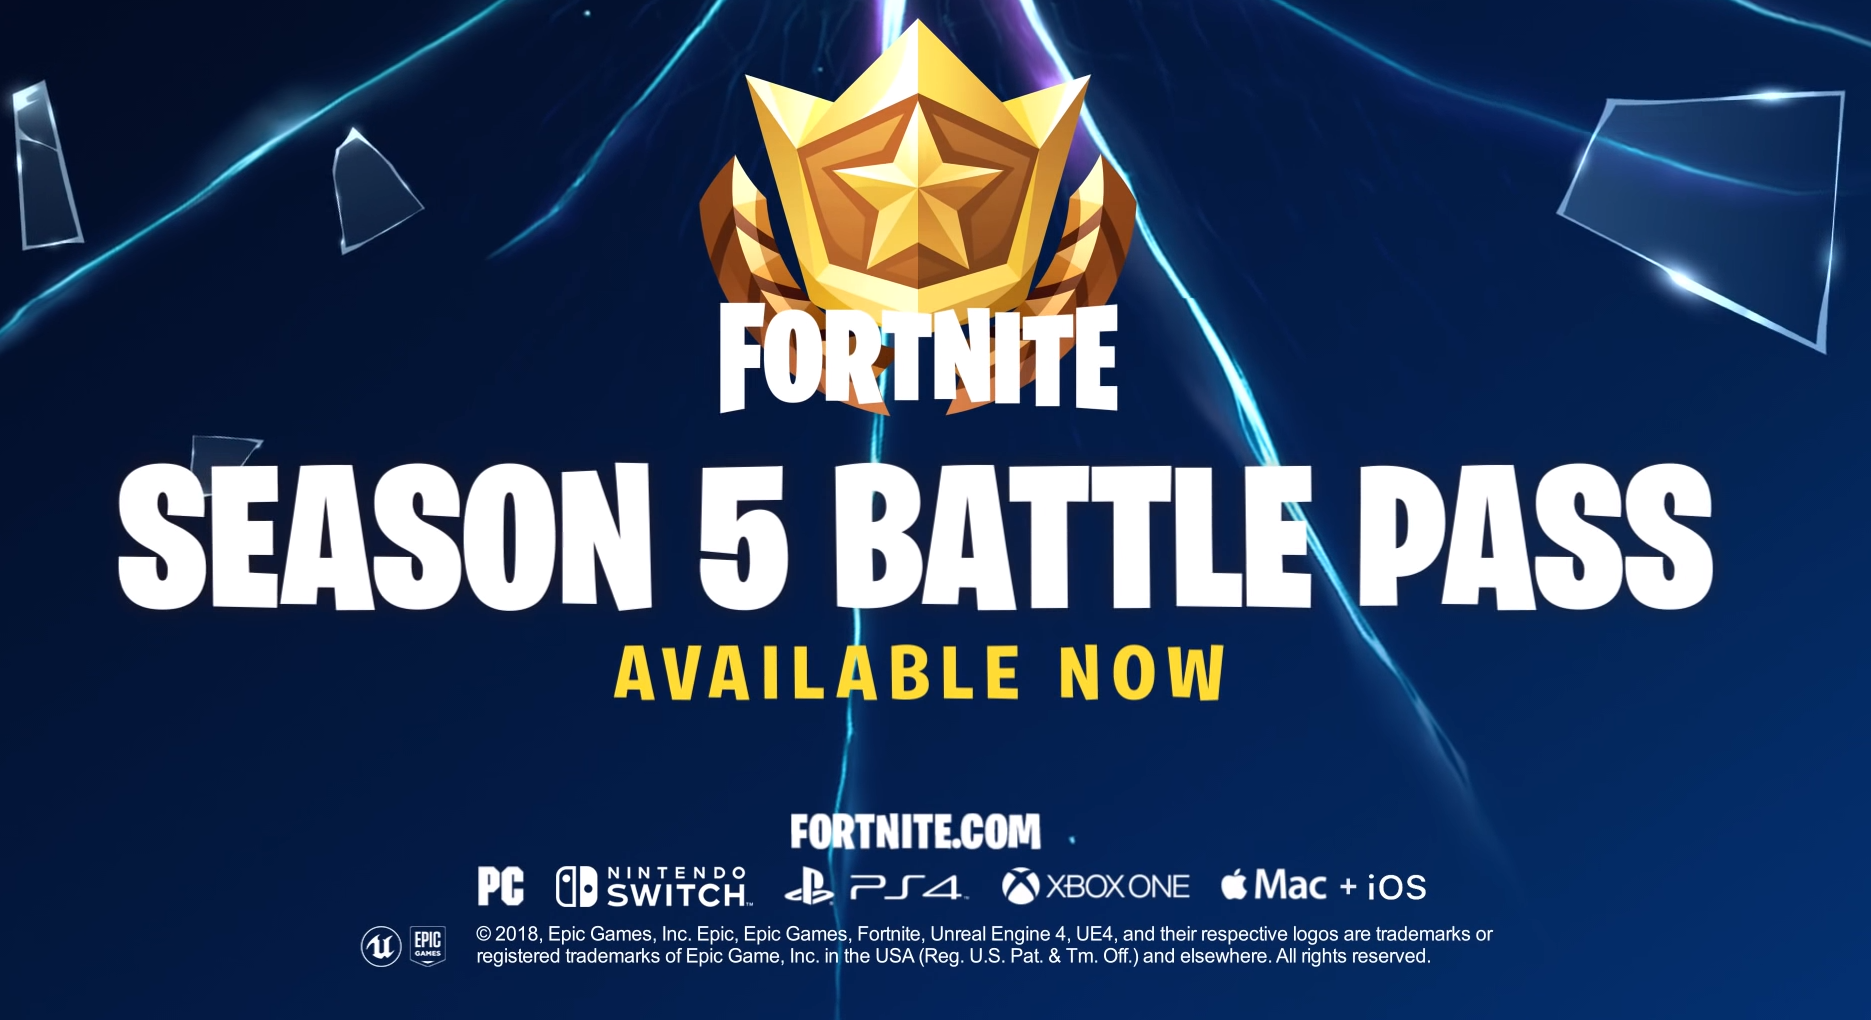 Worlds collide in Fortnite's Season 5, available now!